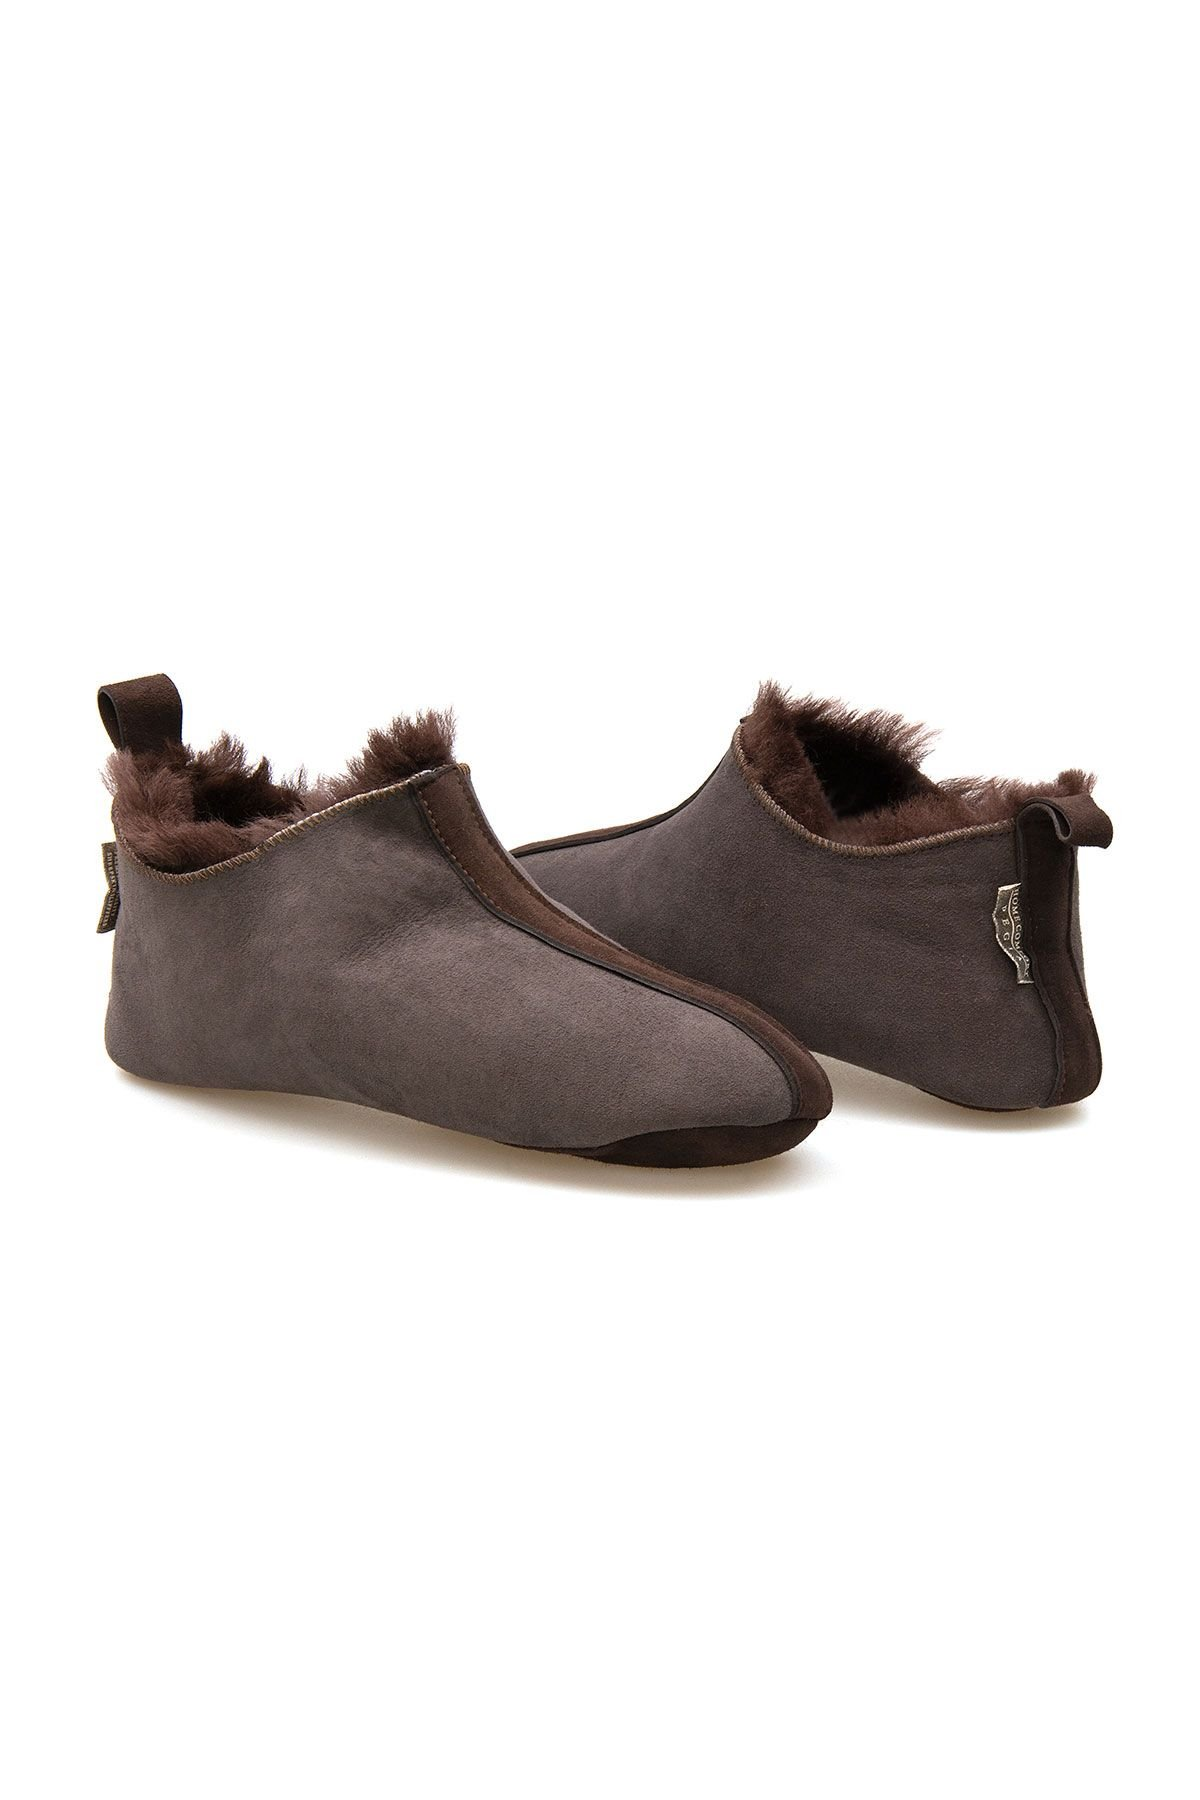 Pegia Men's Shearling House Shoes 980610 Brown